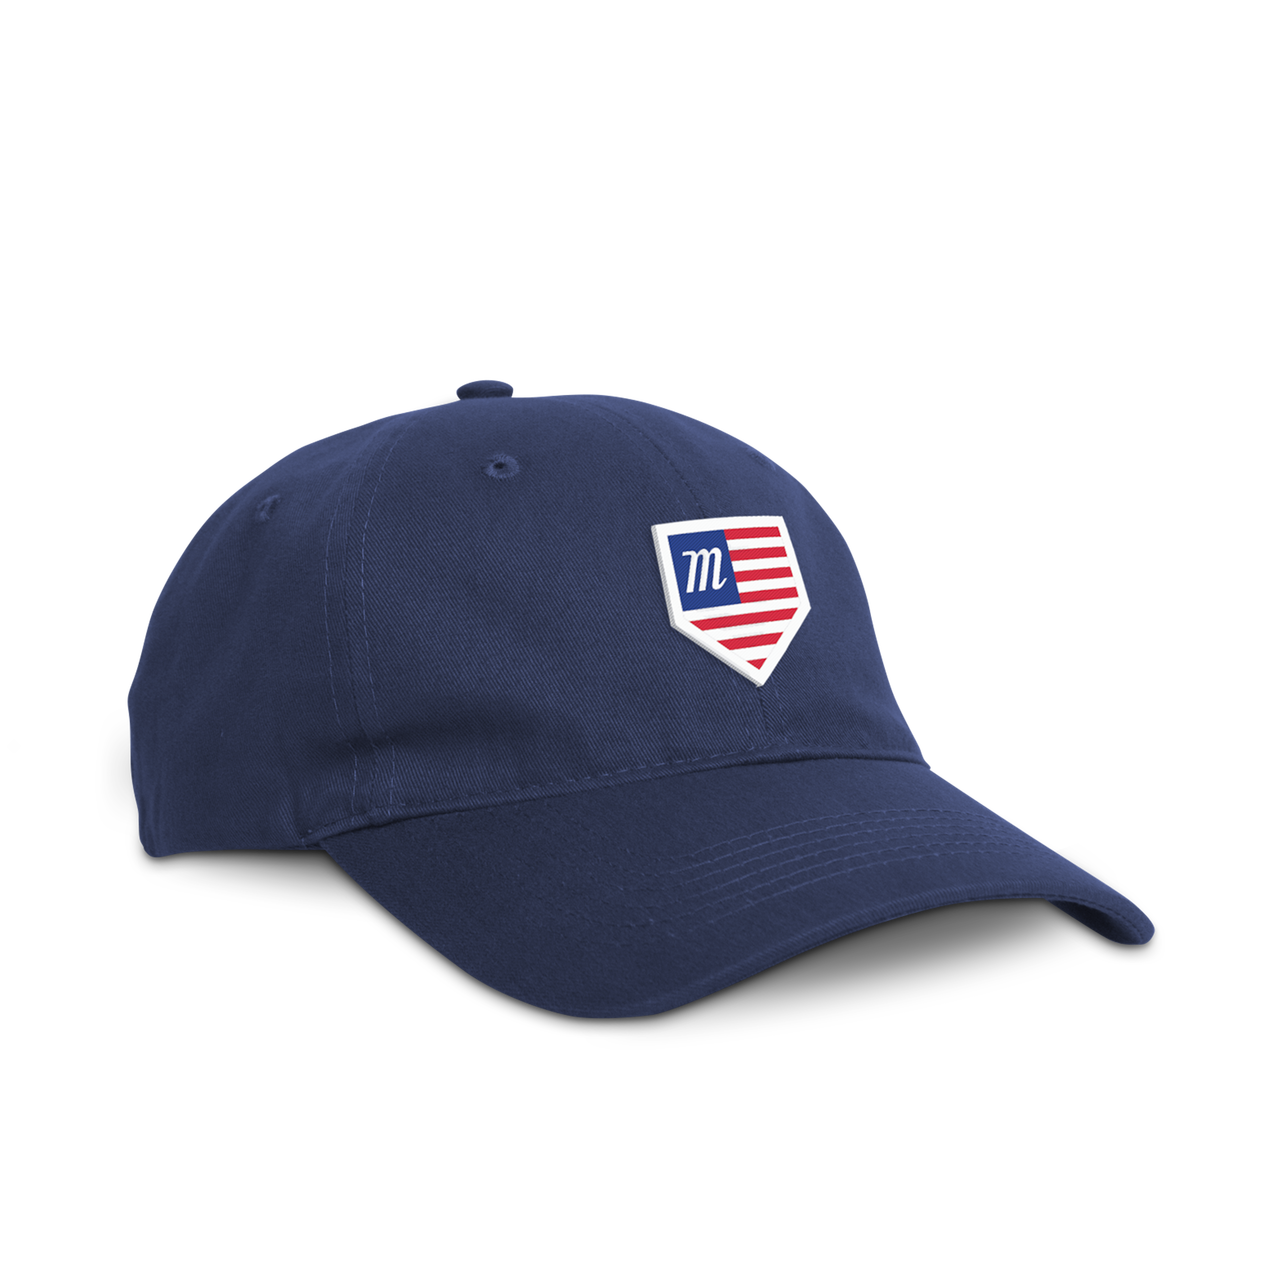 Marucci USA Home Plate Relaxed Fit Hat